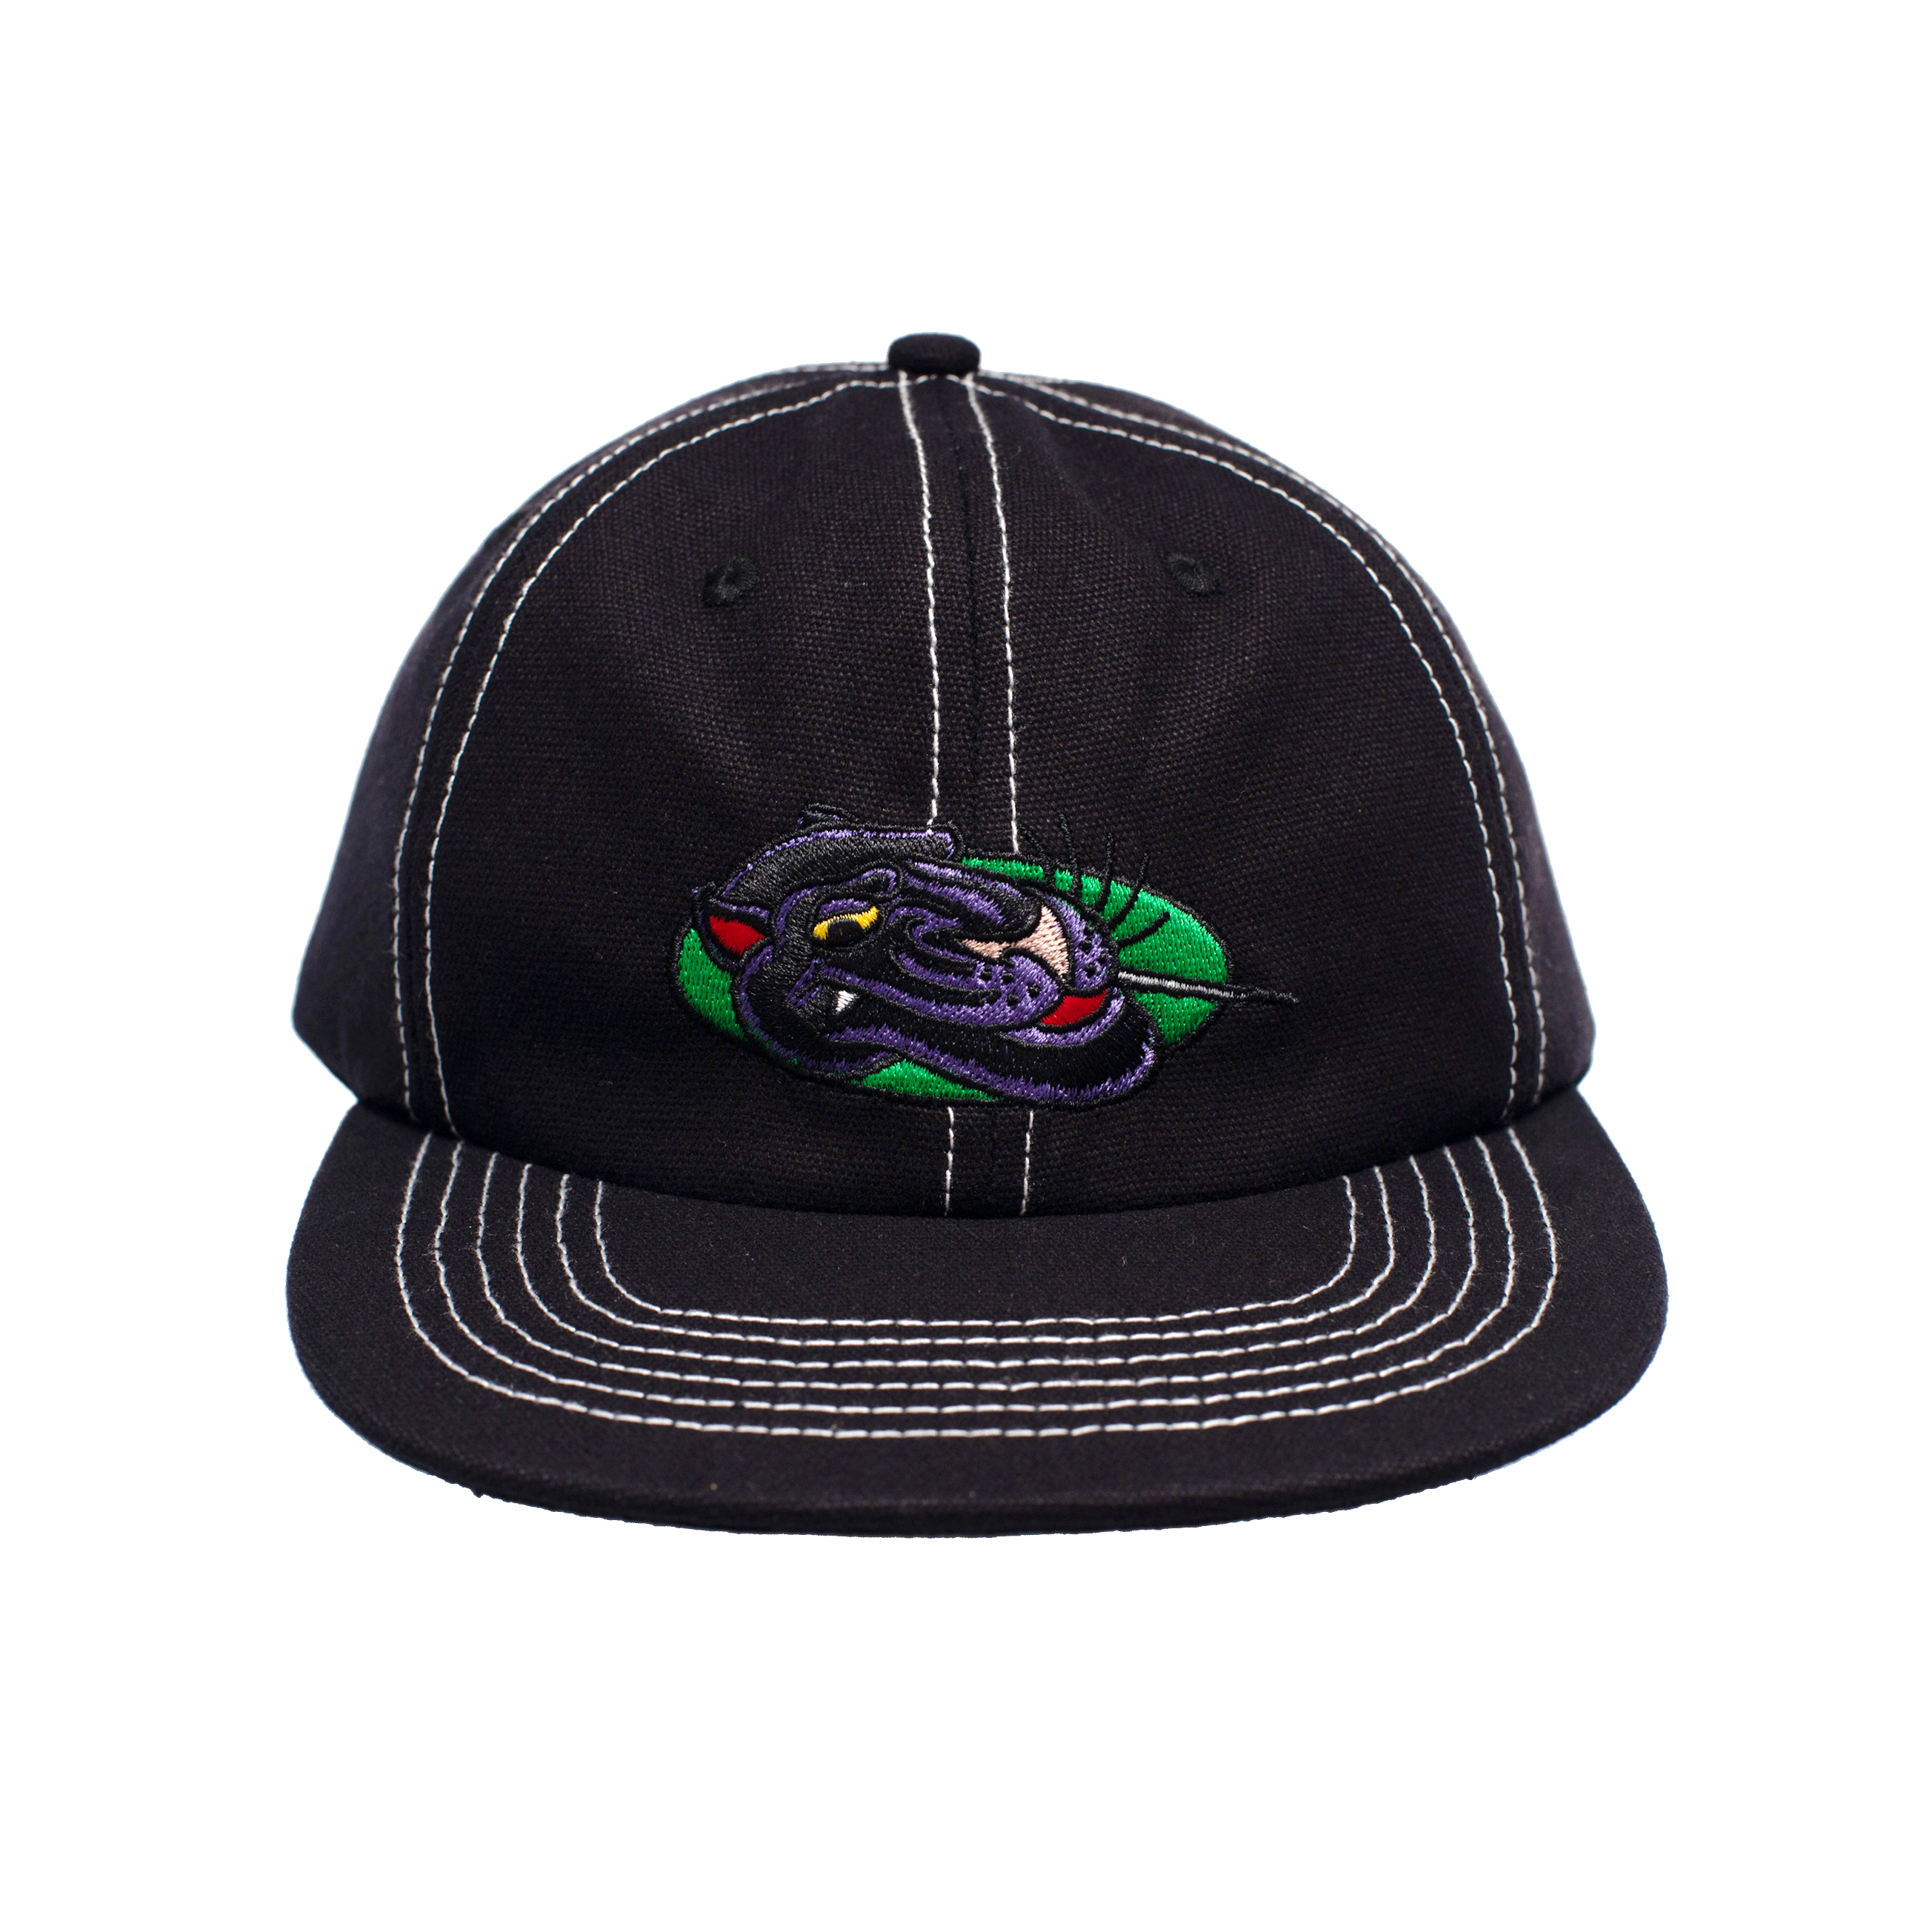 Black+panther+hat+front